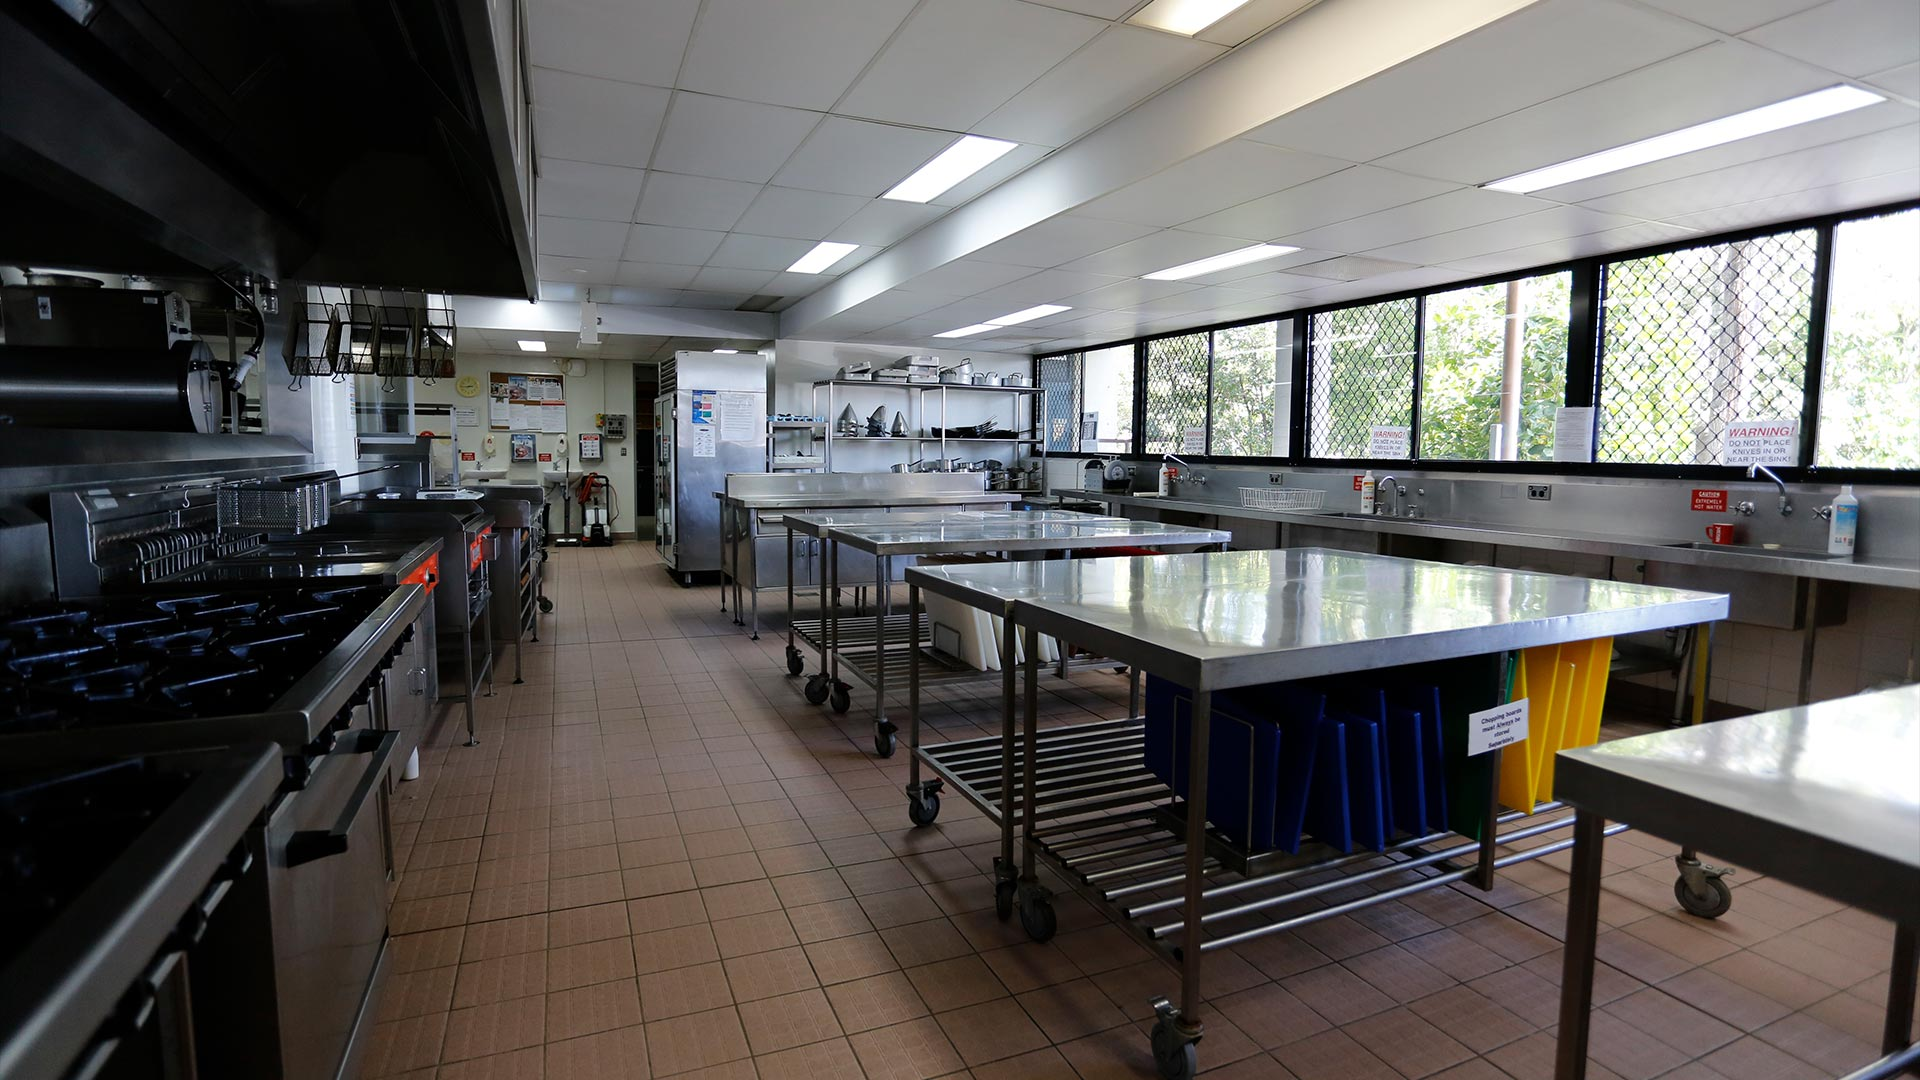 ipswich-facilities-hospitality-hubs-commericial-kitchens-01.jpg